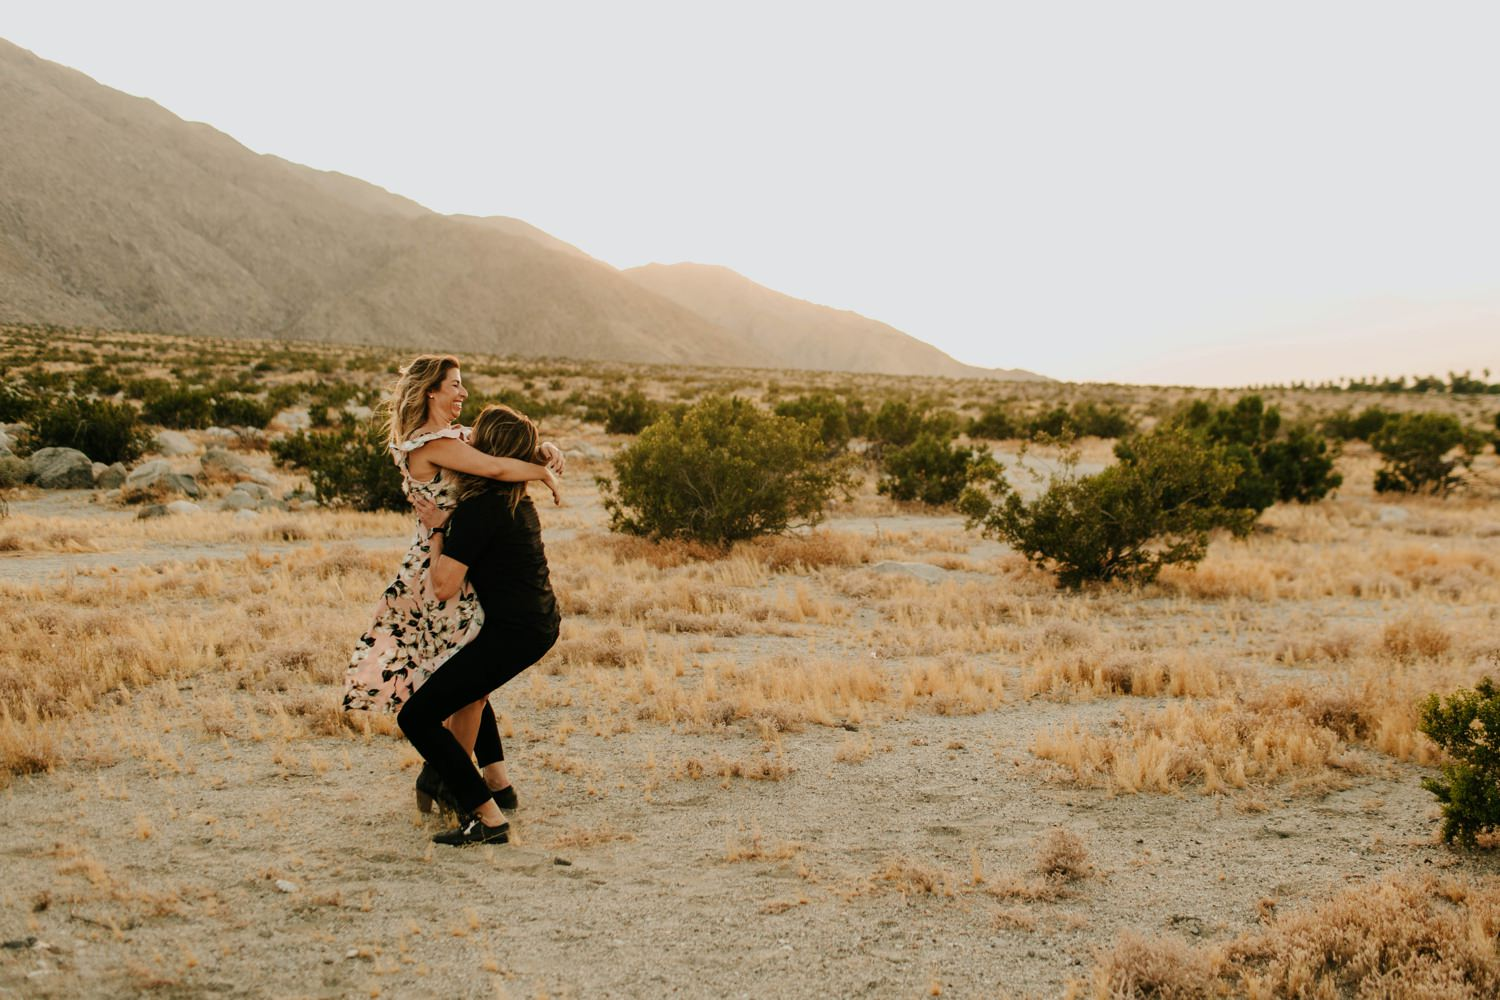 Palm Springs Photographer | http://alexandriamonette.com